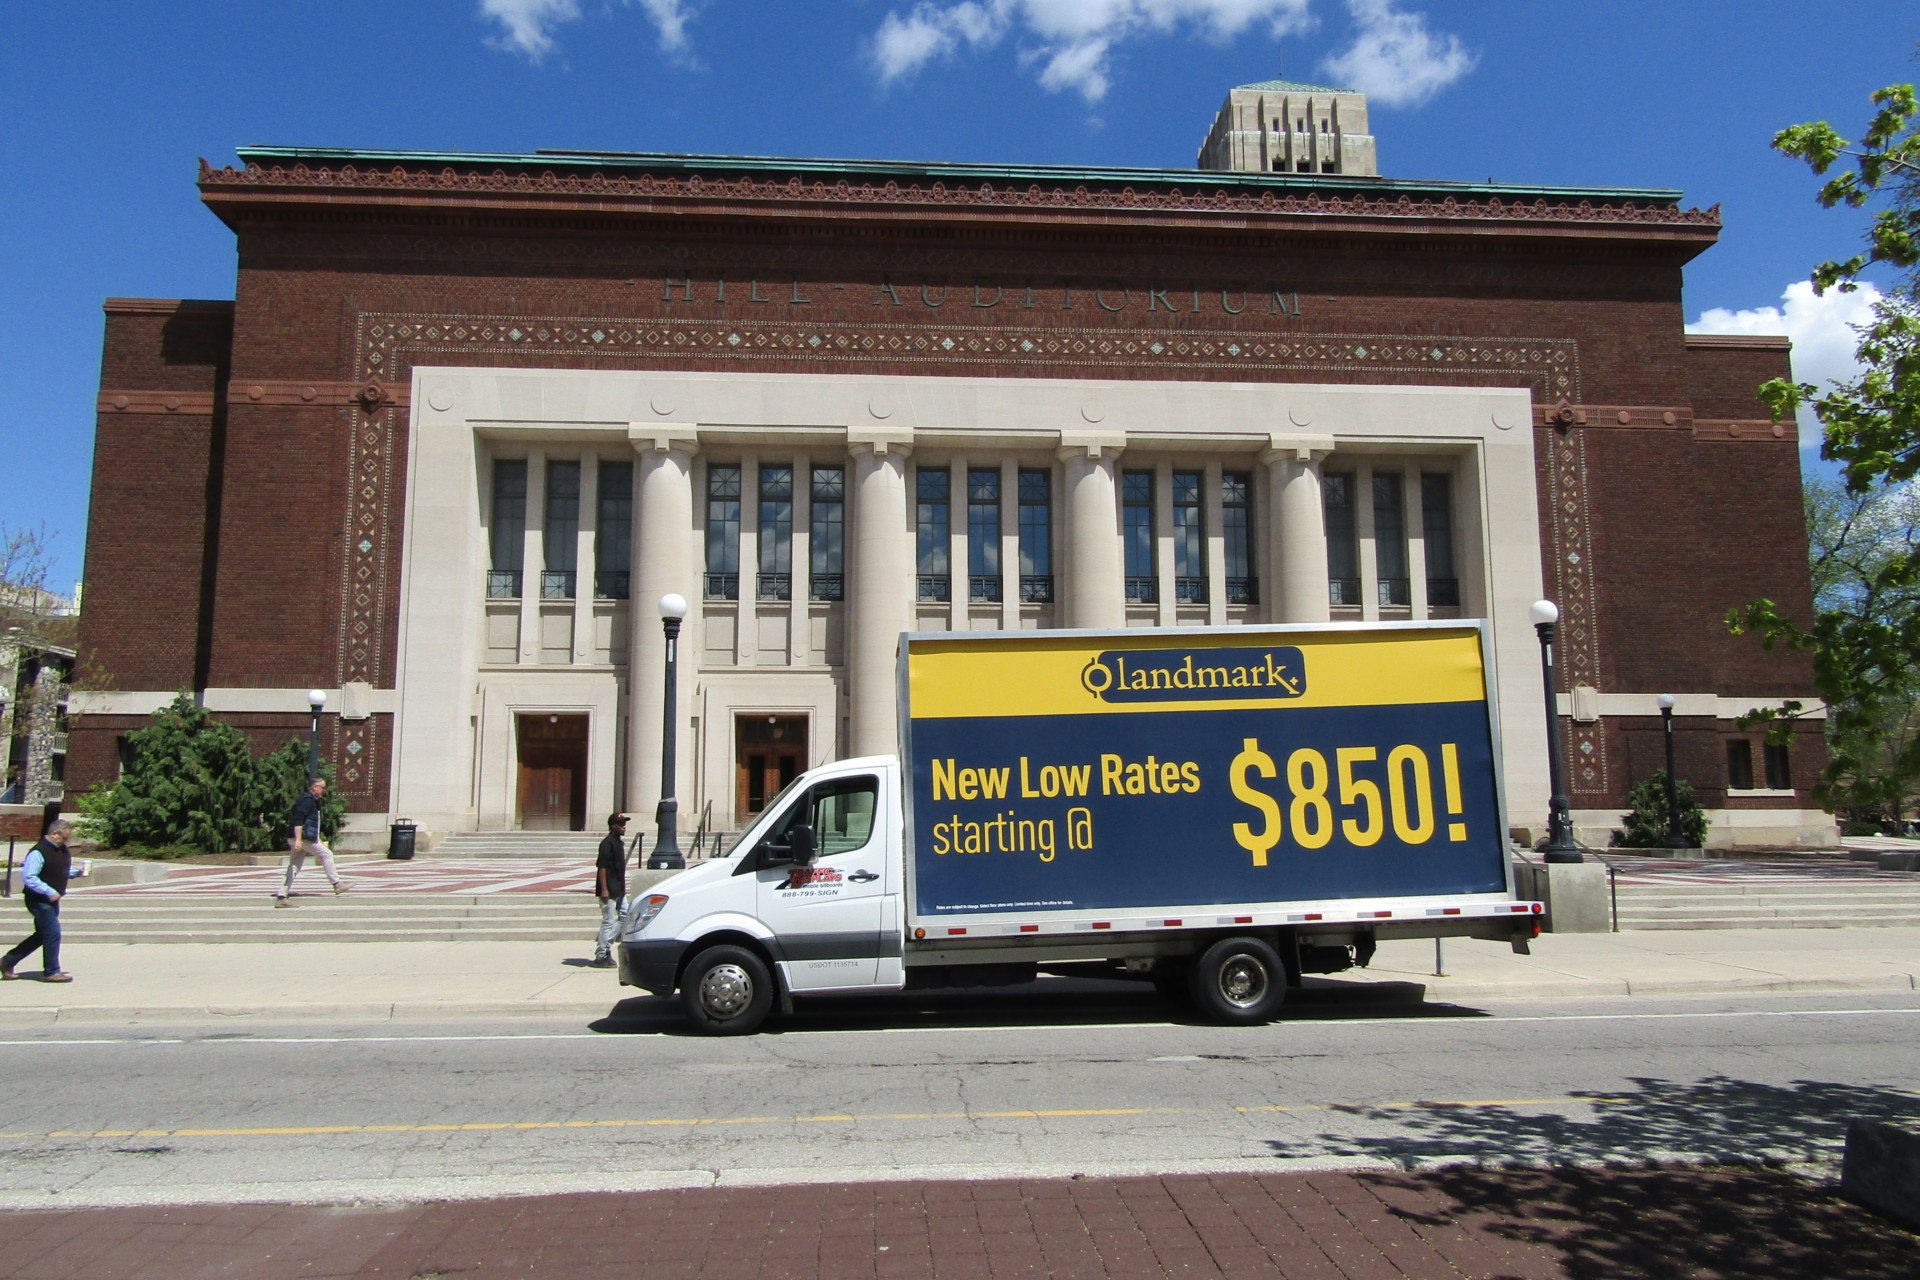 Mobile Billboard Truck in Ann Arbor, MI